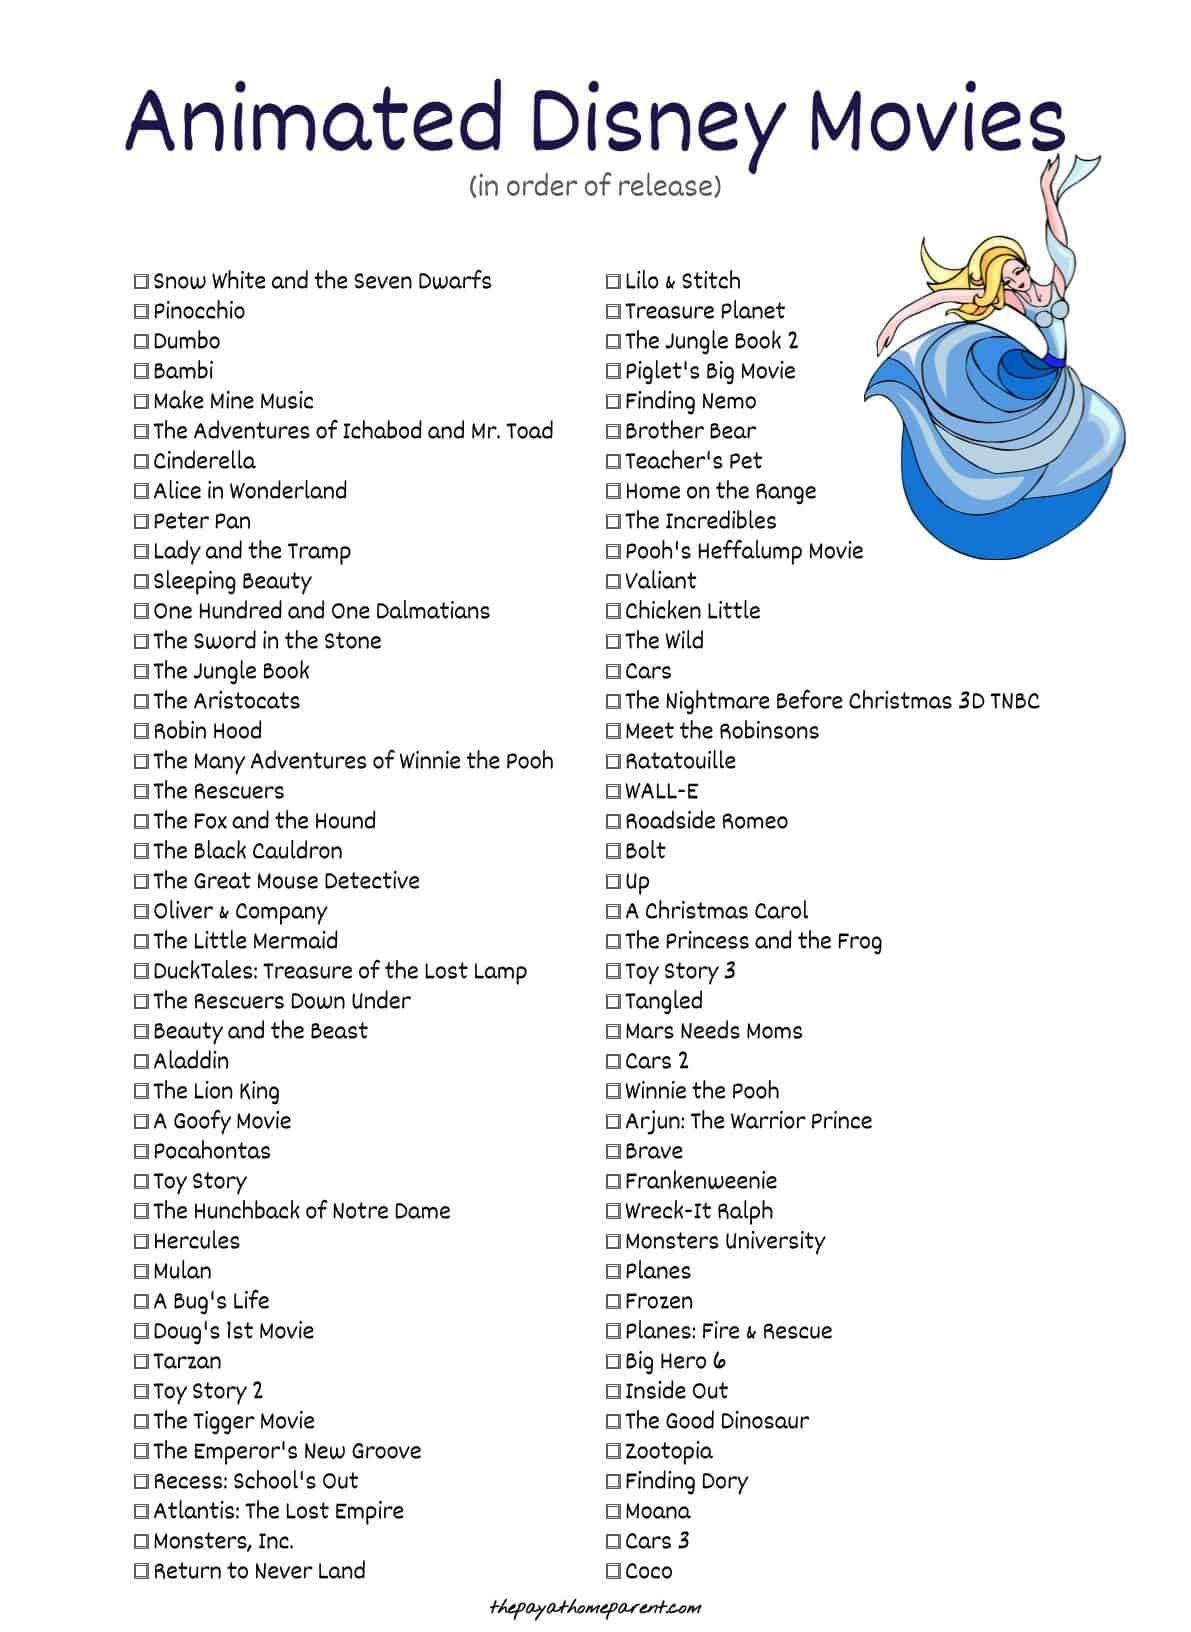 List of Disney animated movies Snow White and the Seven